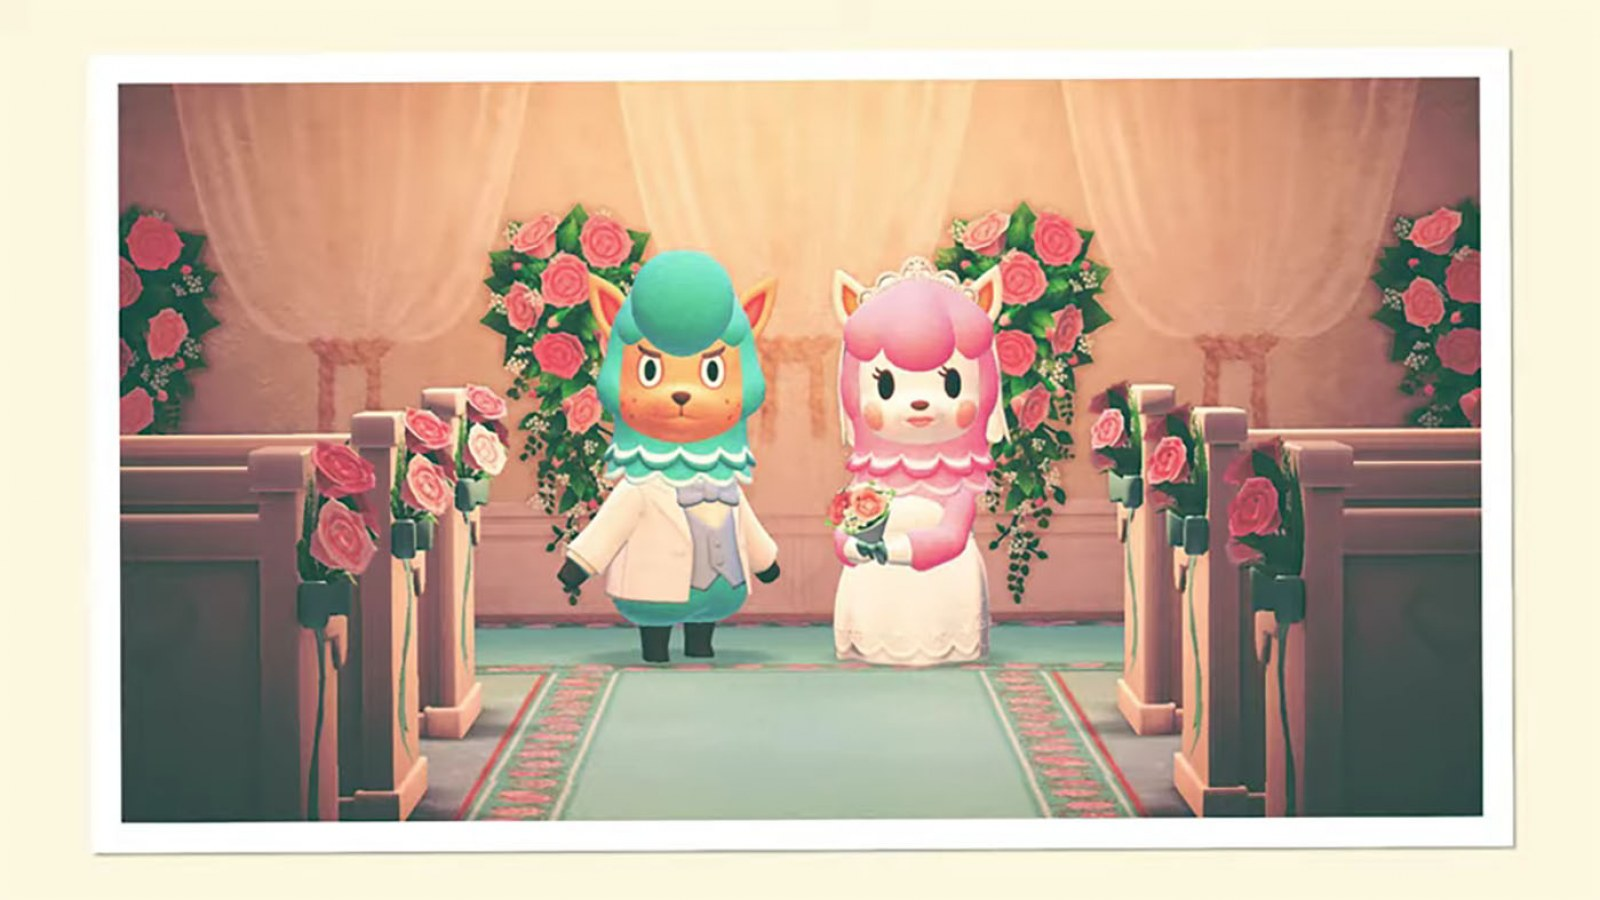 Here S What You Need To Know On Day 1 Of Animal Crossing New